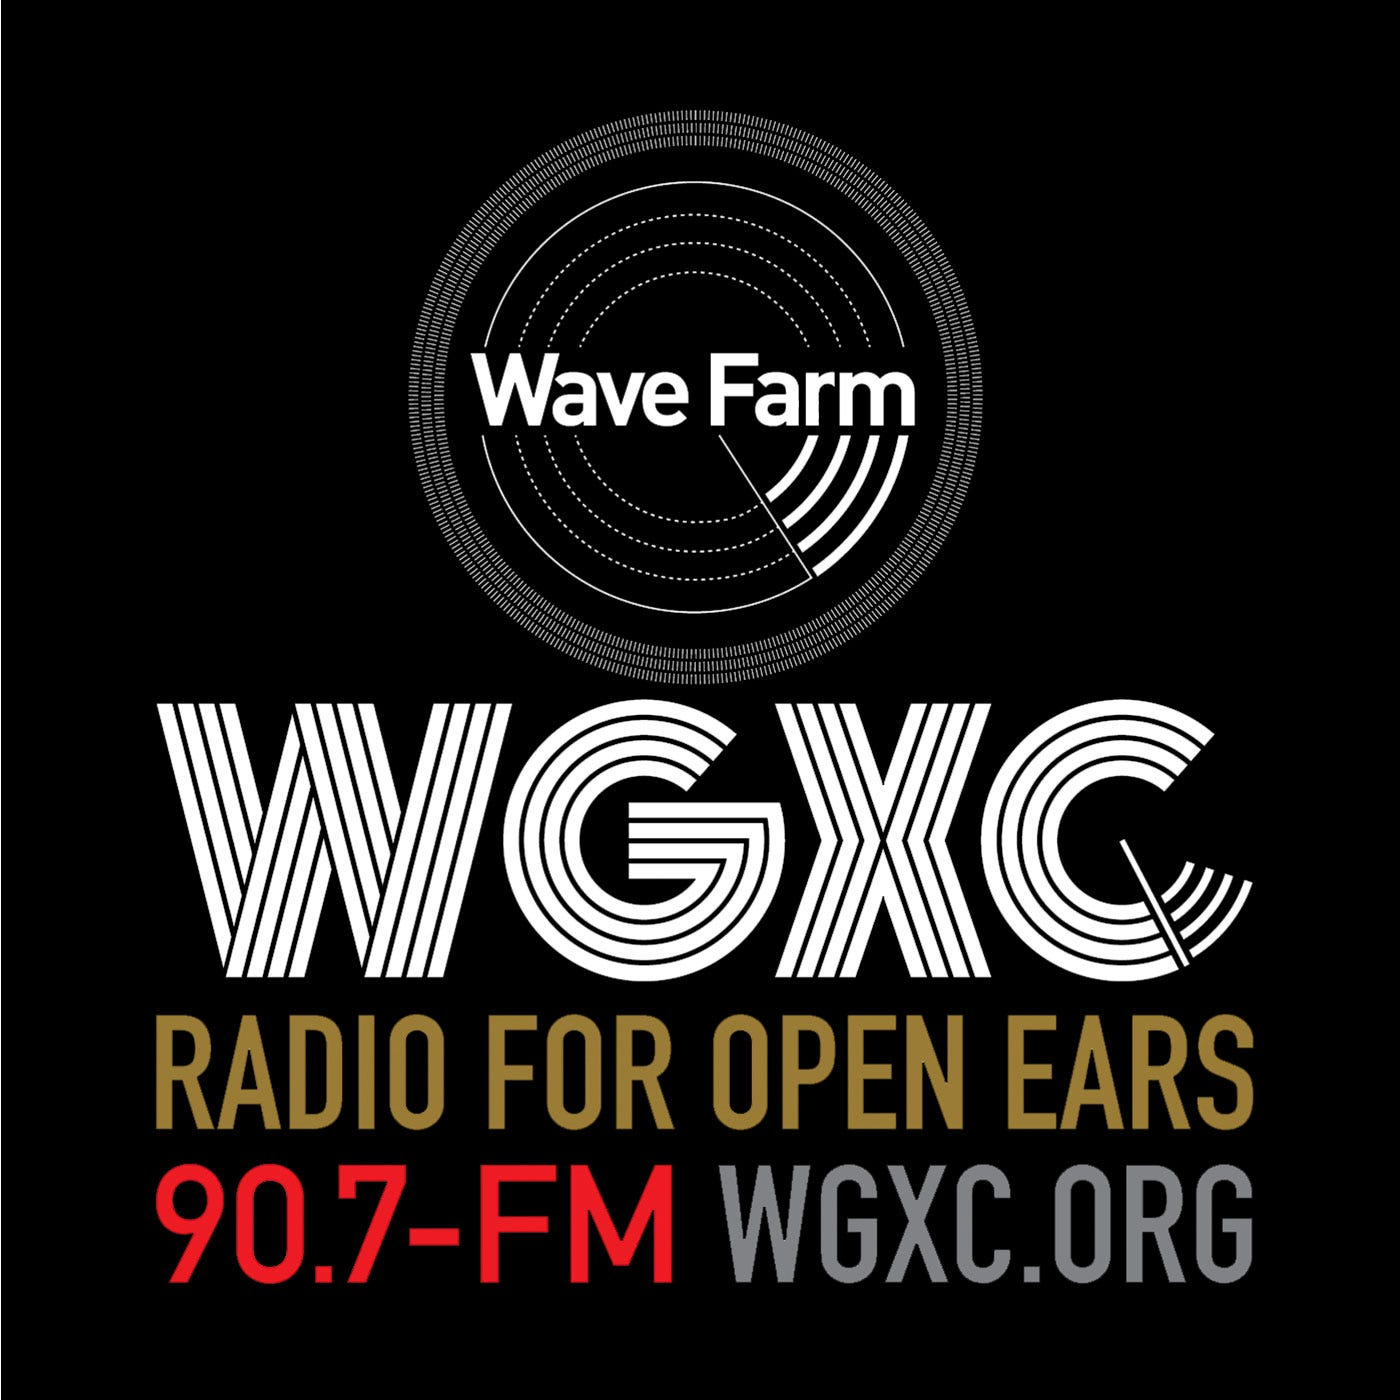 Wave Farm Radio's WGXC